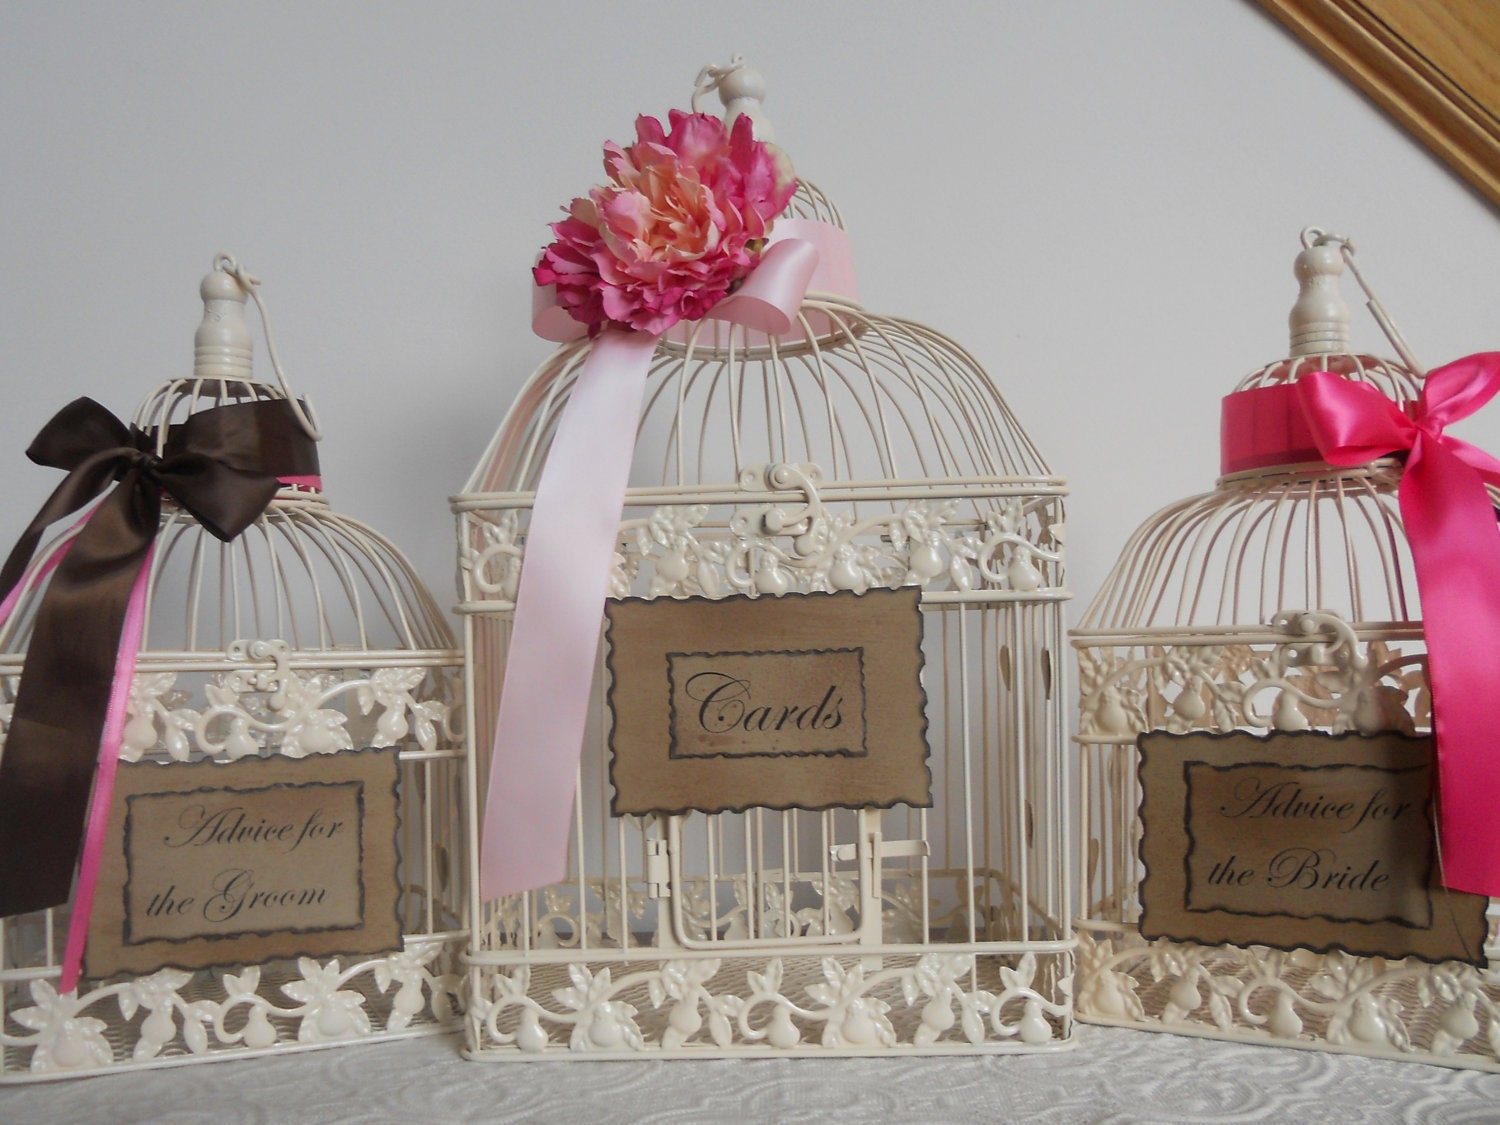 Birdcage For Wedding Gift Cards : Items similar to Birdcage Wedding Card Holder / Card Box on Etsy